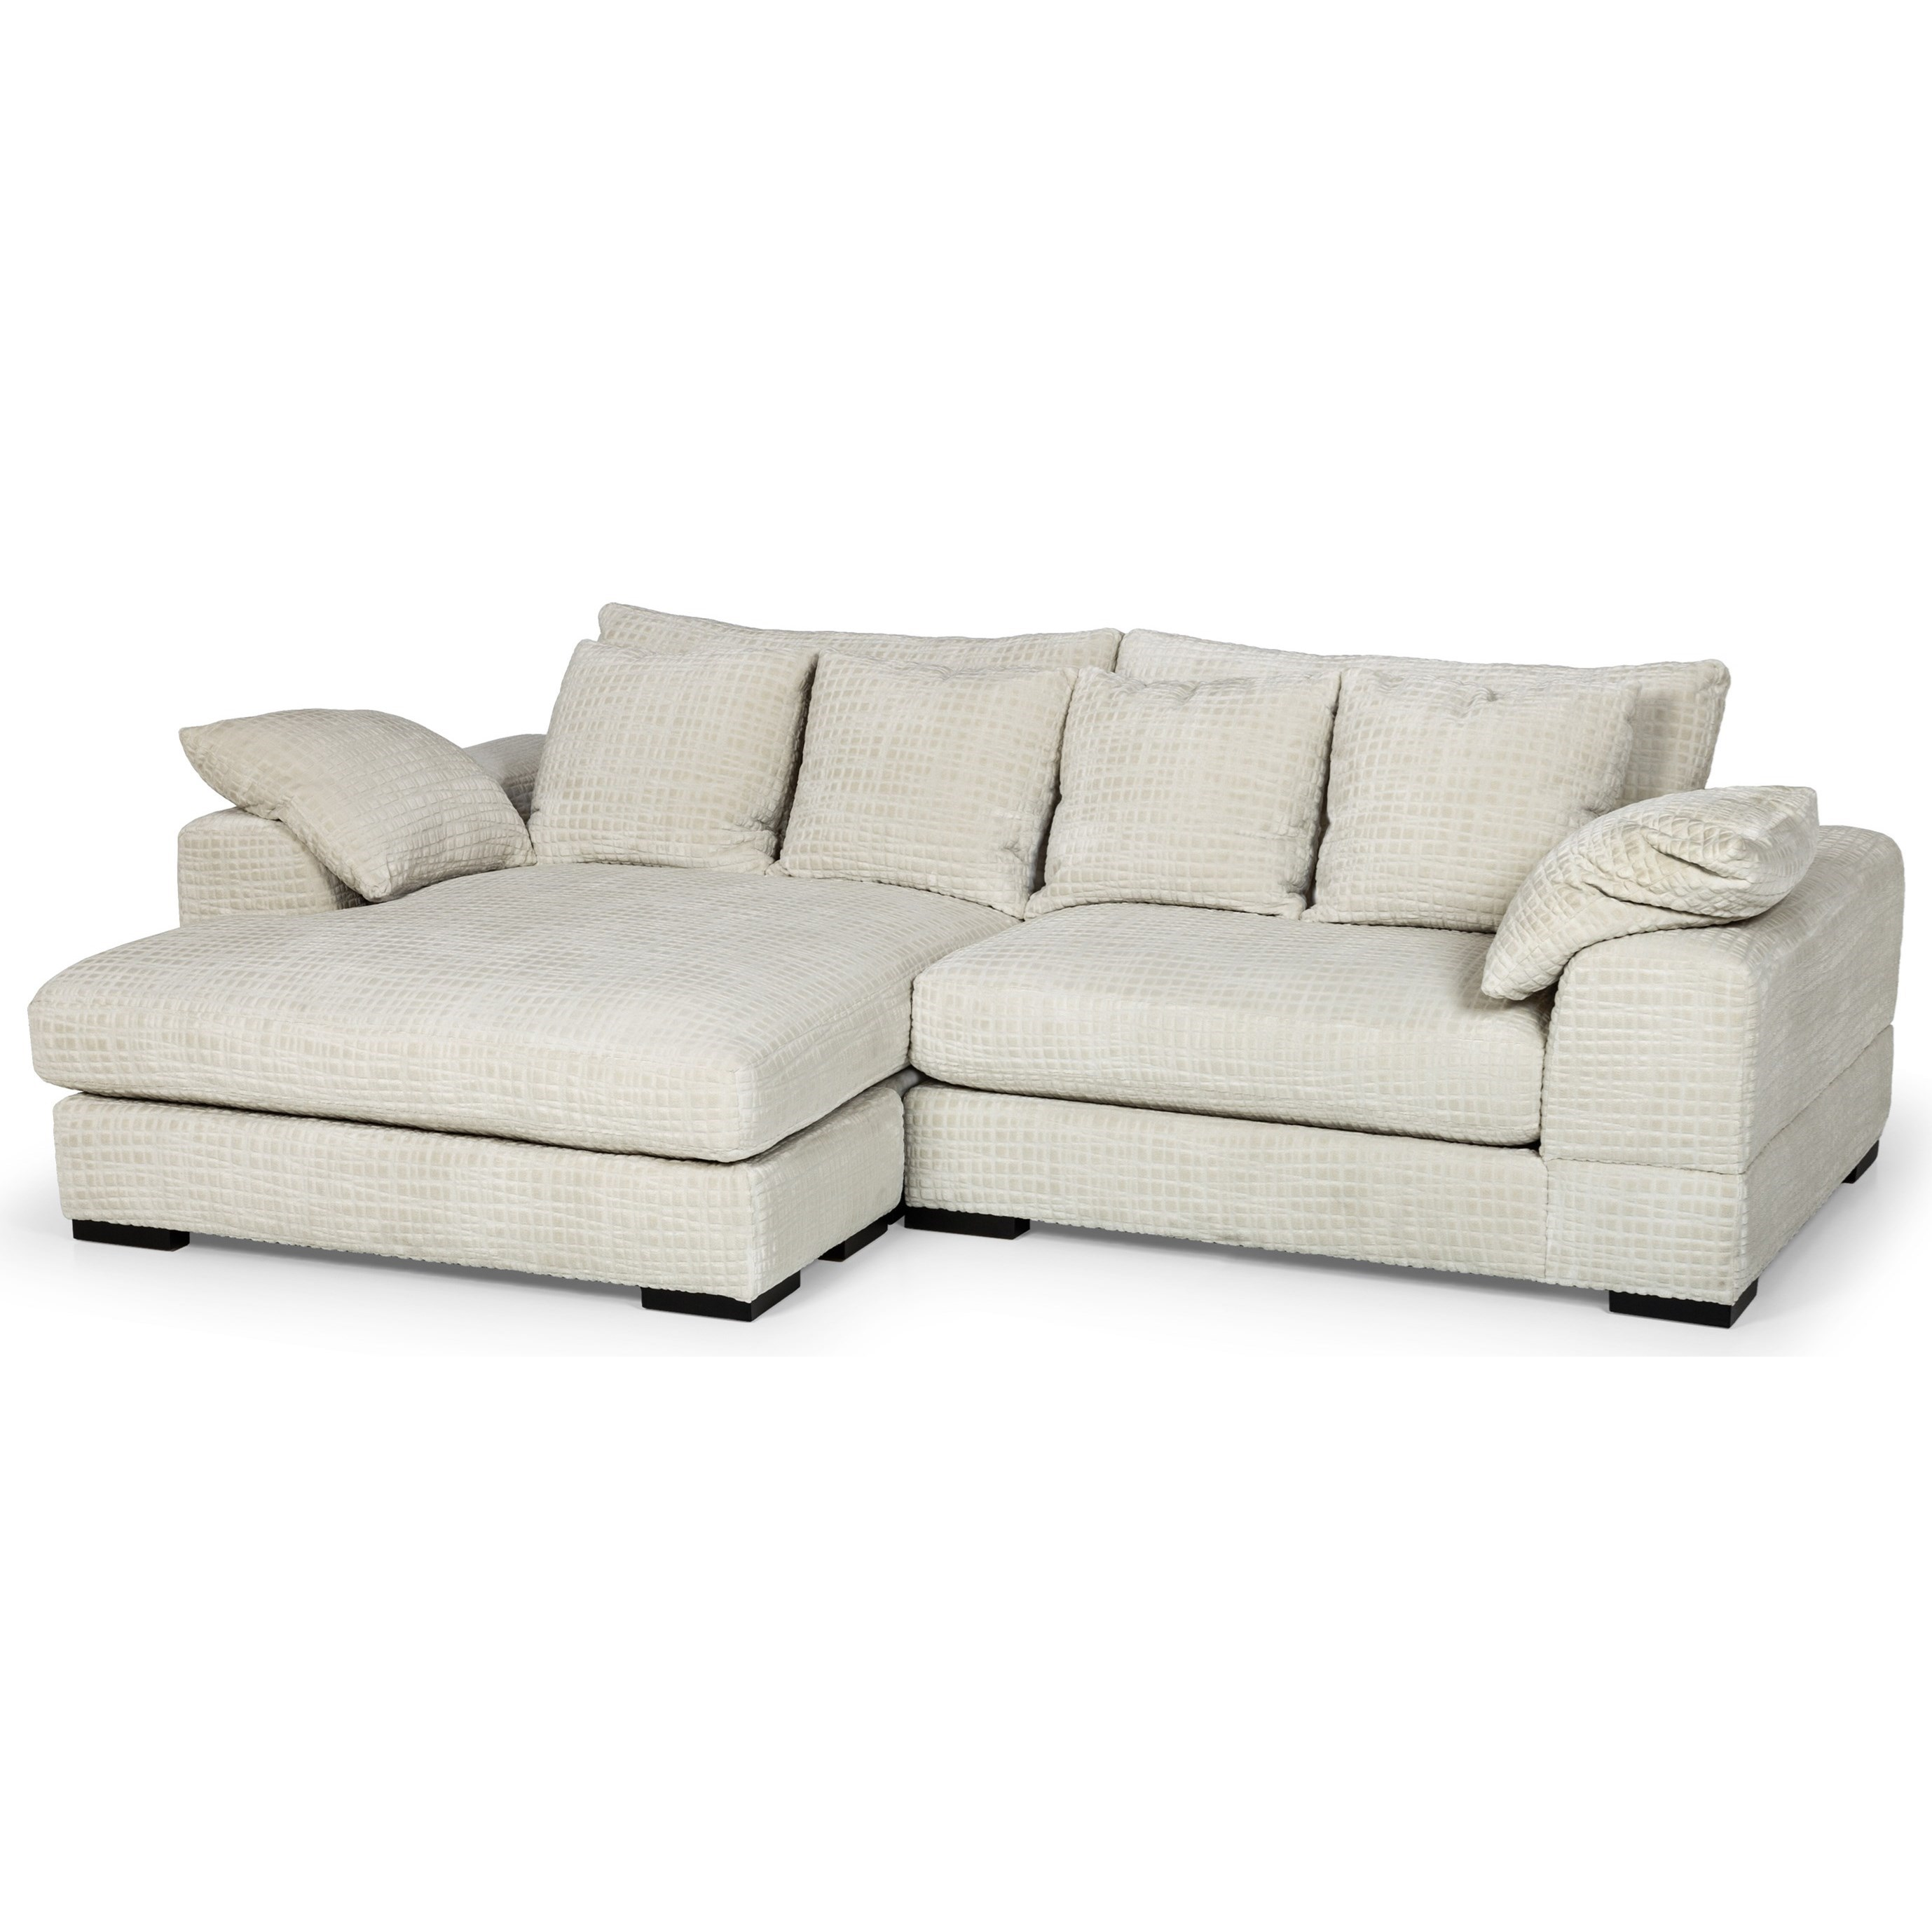 480 2-Piece Sectional Sofa w/ LAF Chaise by Stanton at Wilson's Furniture